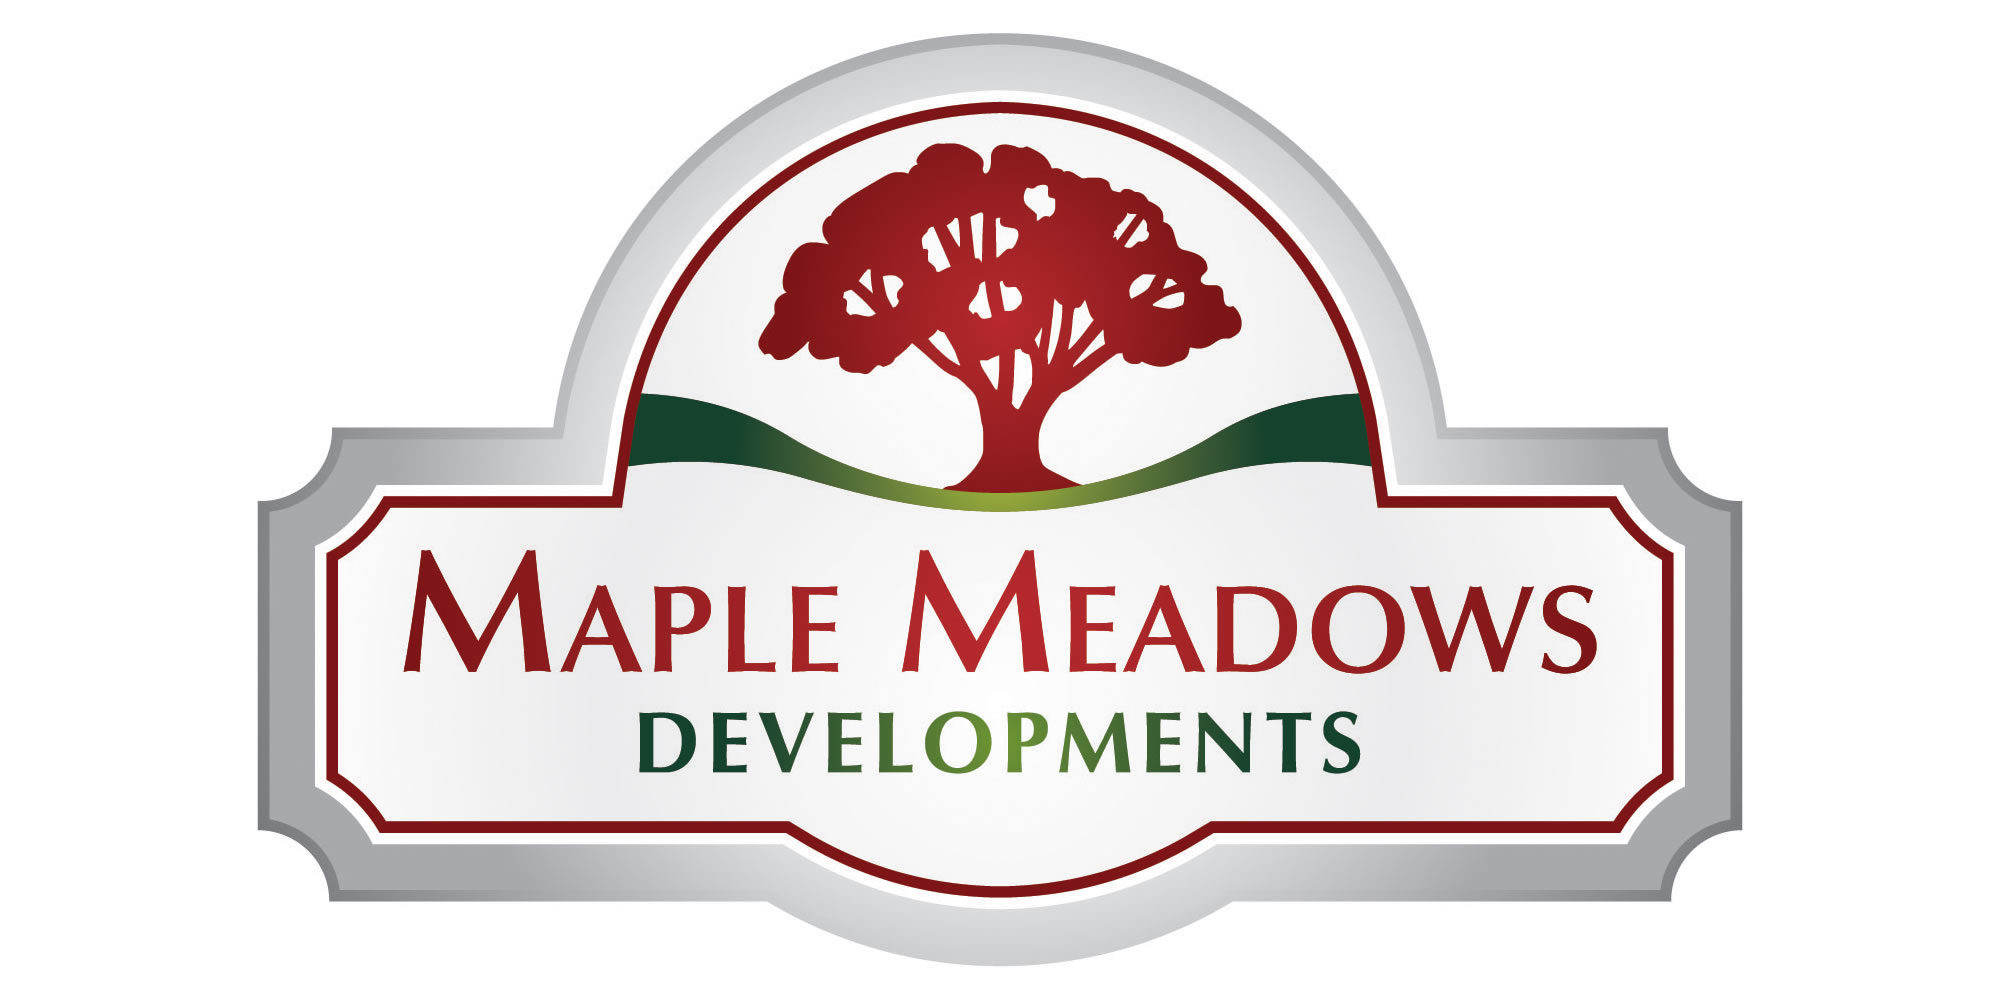 About Maple Meadows Developments